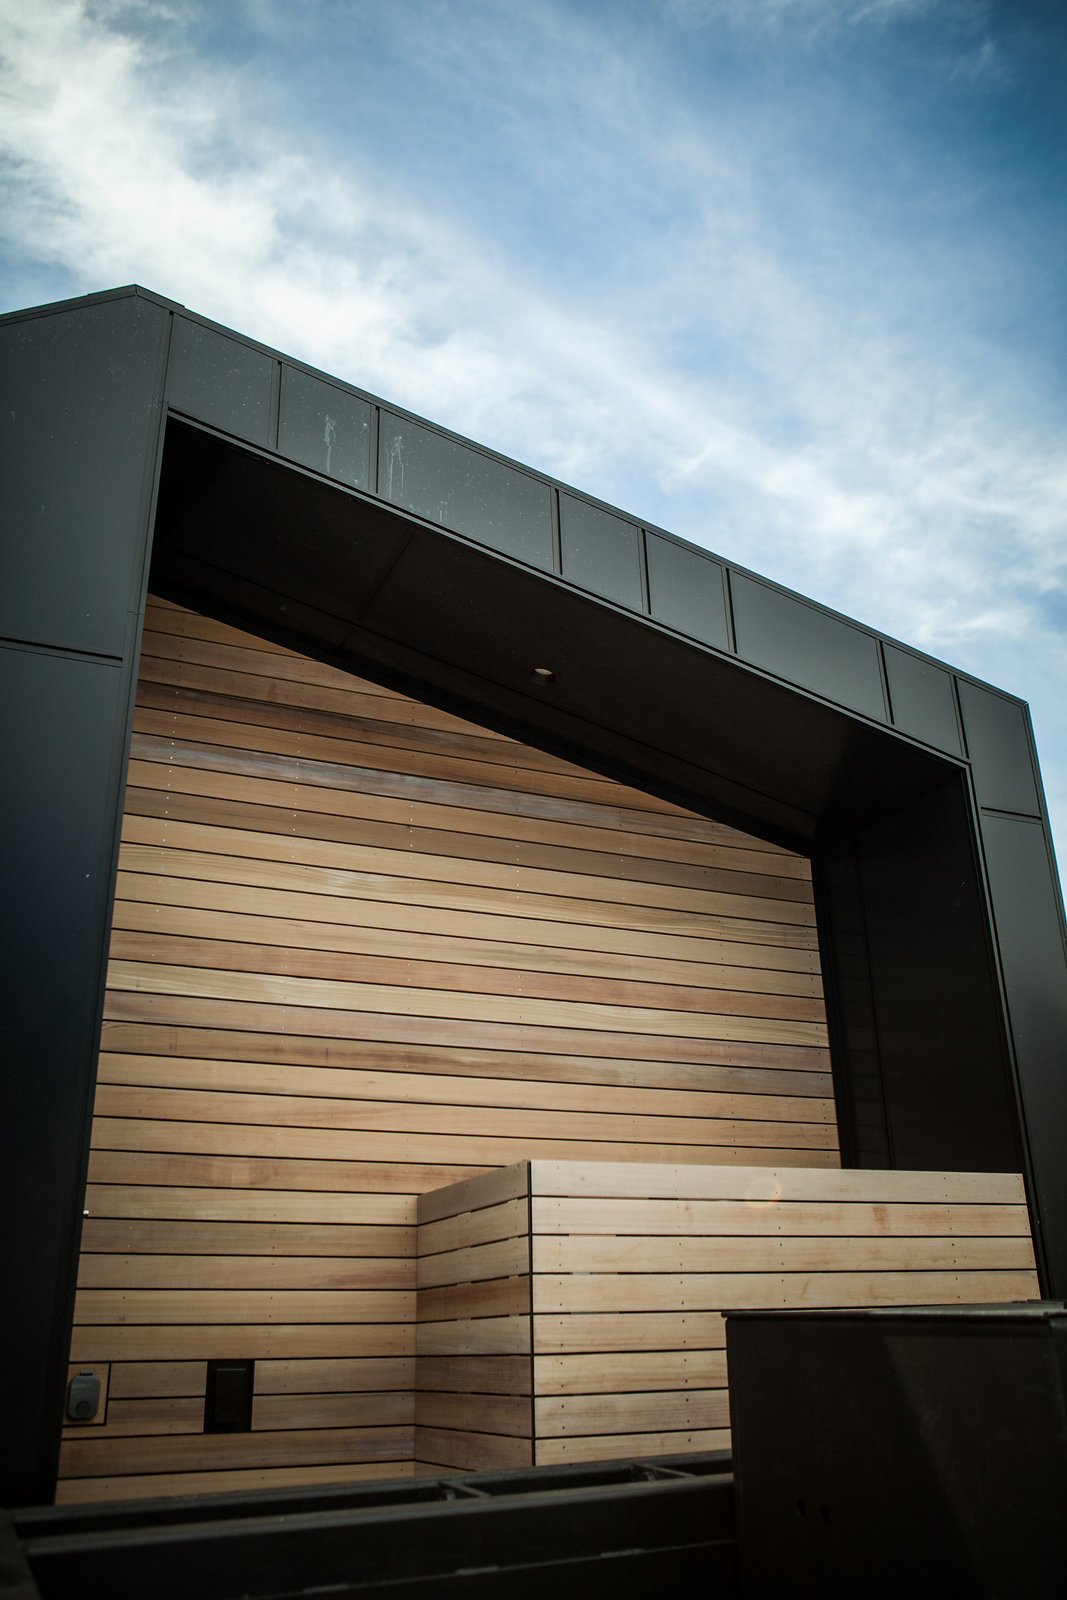 Exterior, Prefab Building Type, Metal Roof Material, and Wood Siding Material Monogram Modern Home 2016 – San Francisco #MMHT #SF #monogrammodern  Photo 5 of 16 in Make the Dwell Prefab Your New Home For $90K from Monogram Modern Home Tour 2016: Seattle, S.F., L.A.